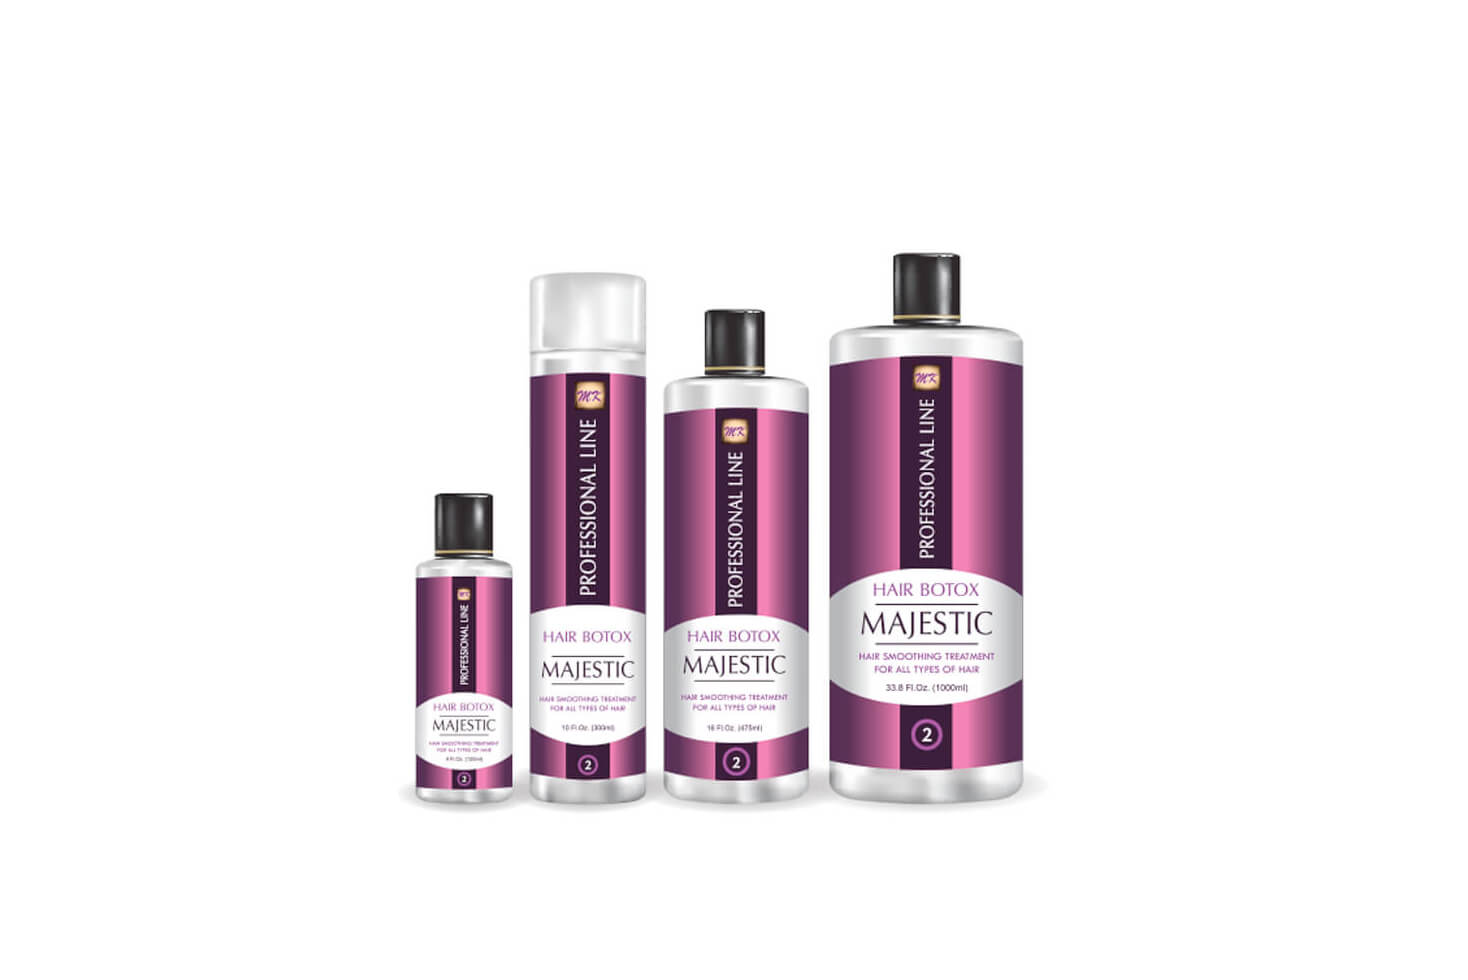 Majestic Hair Botox Treatment Review With Caviar Collagen And Keratin